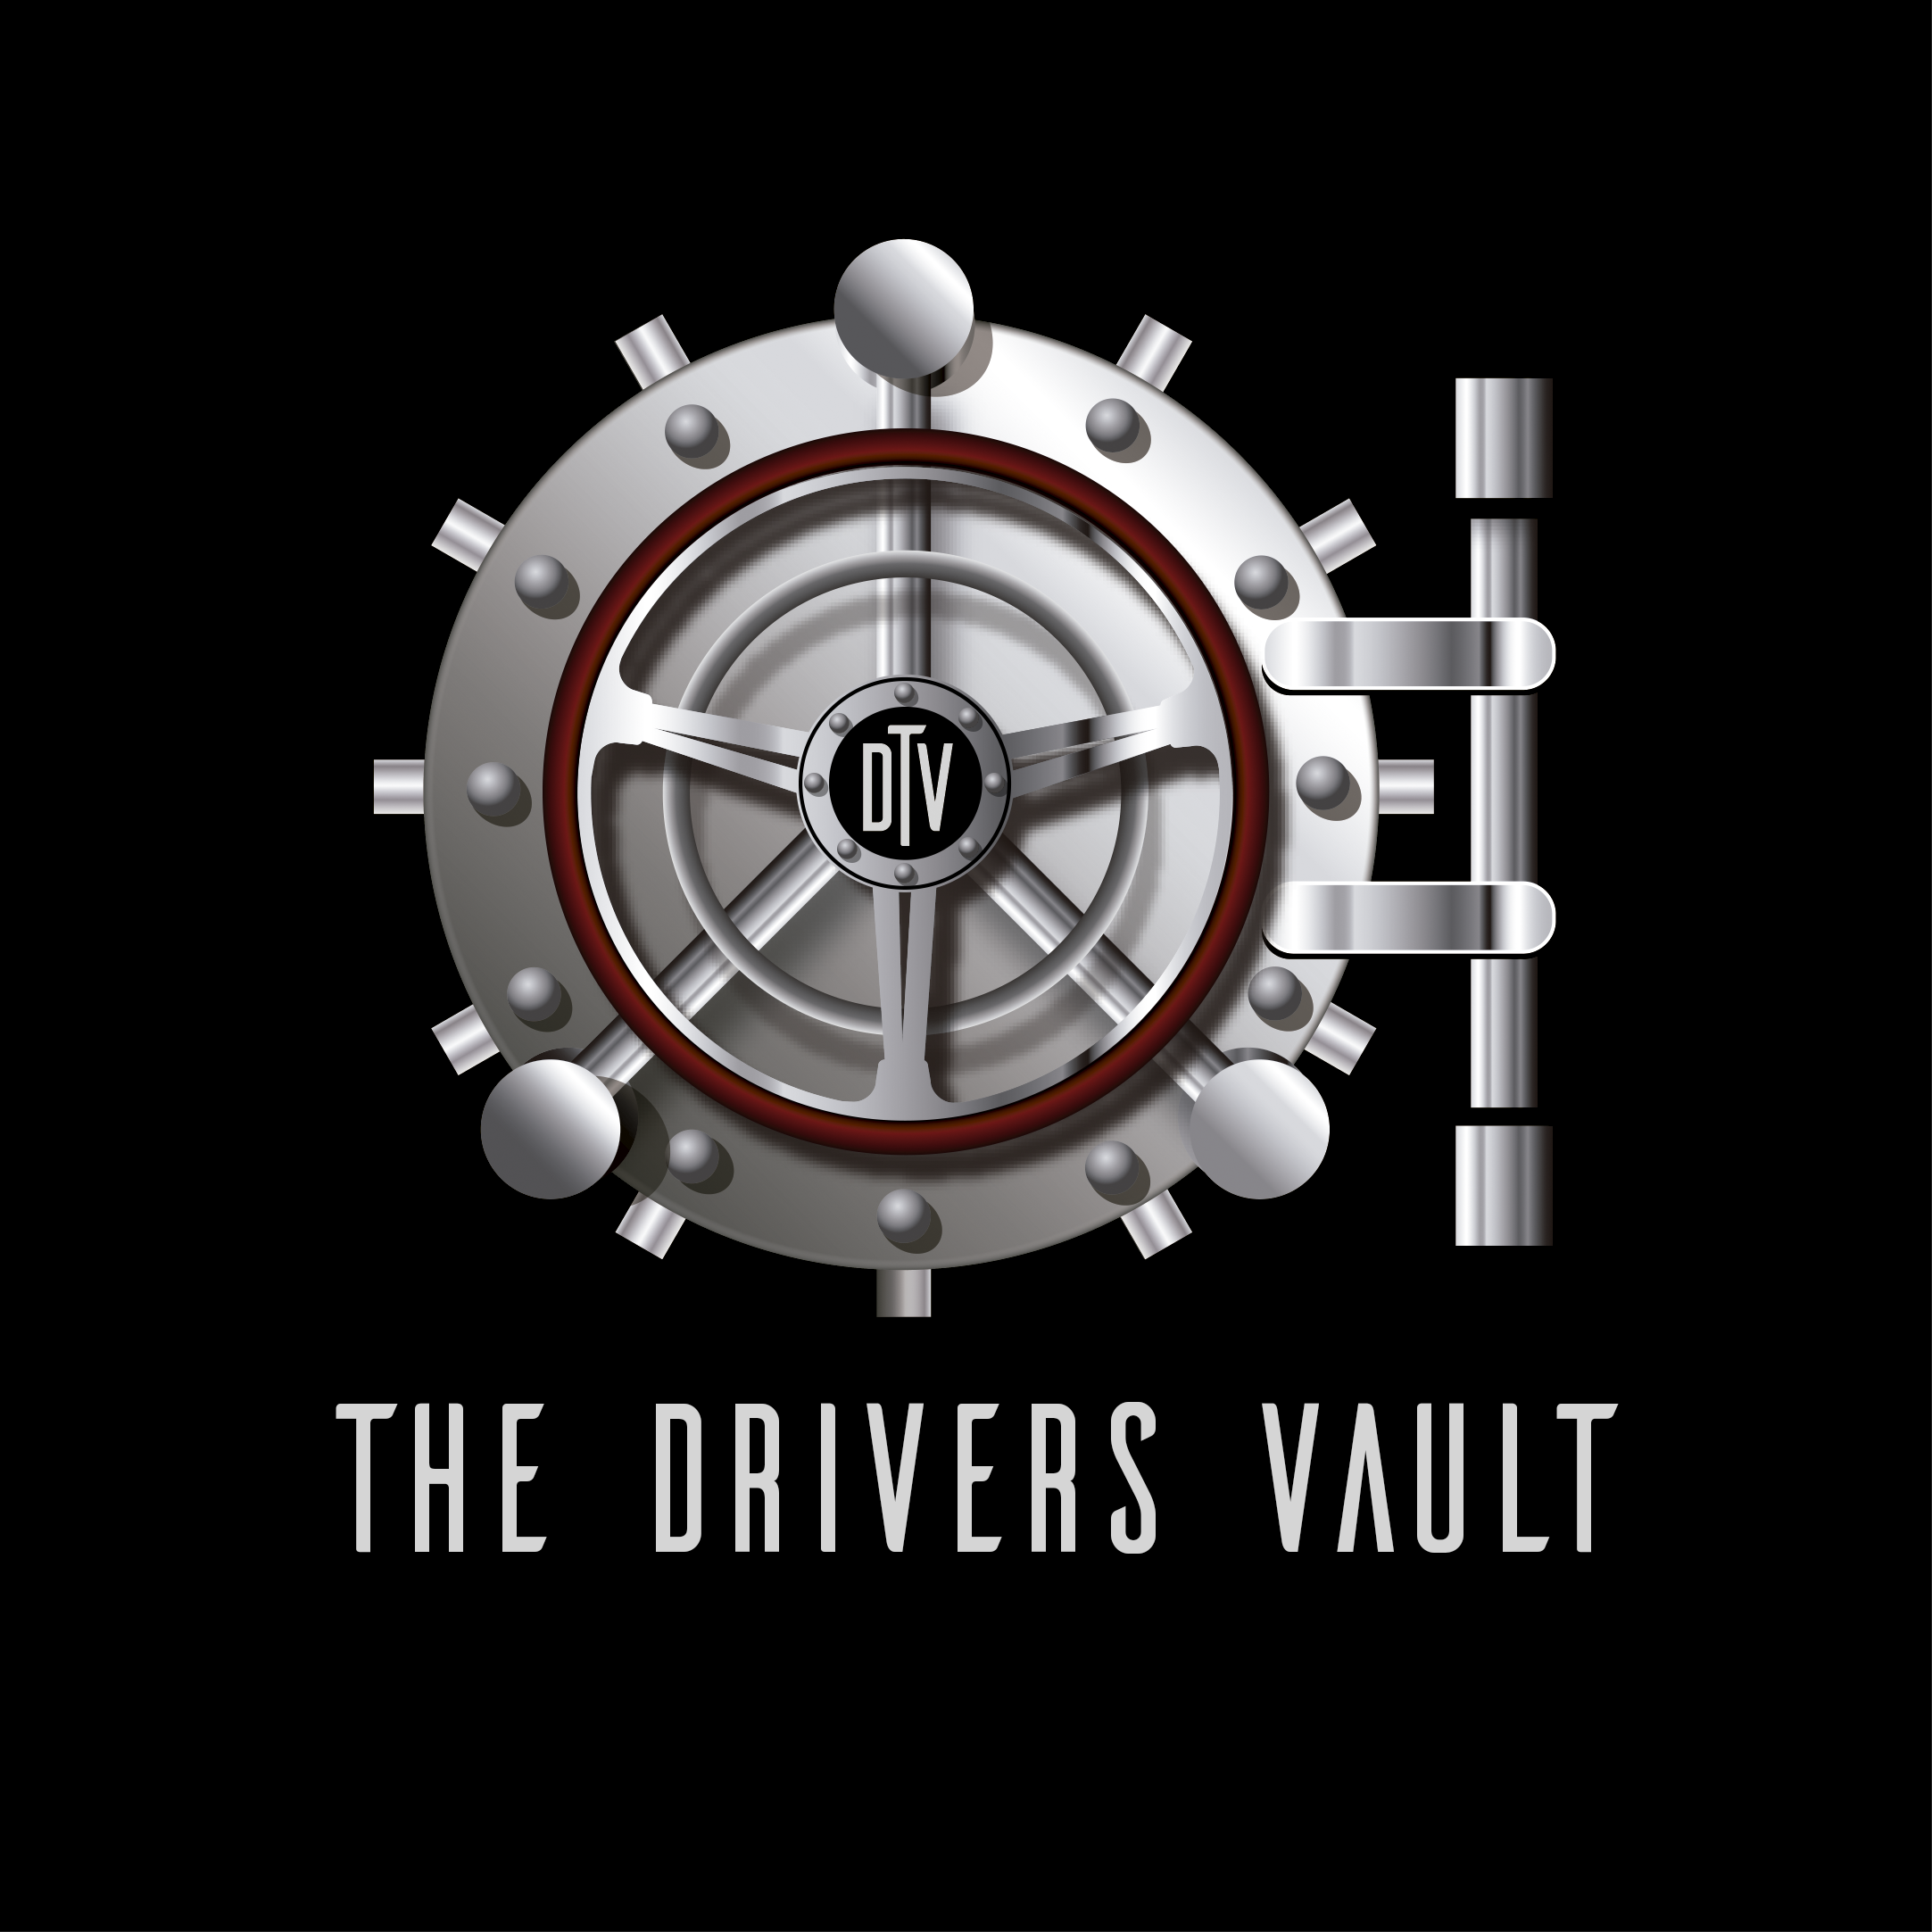 Driver's Vault, The